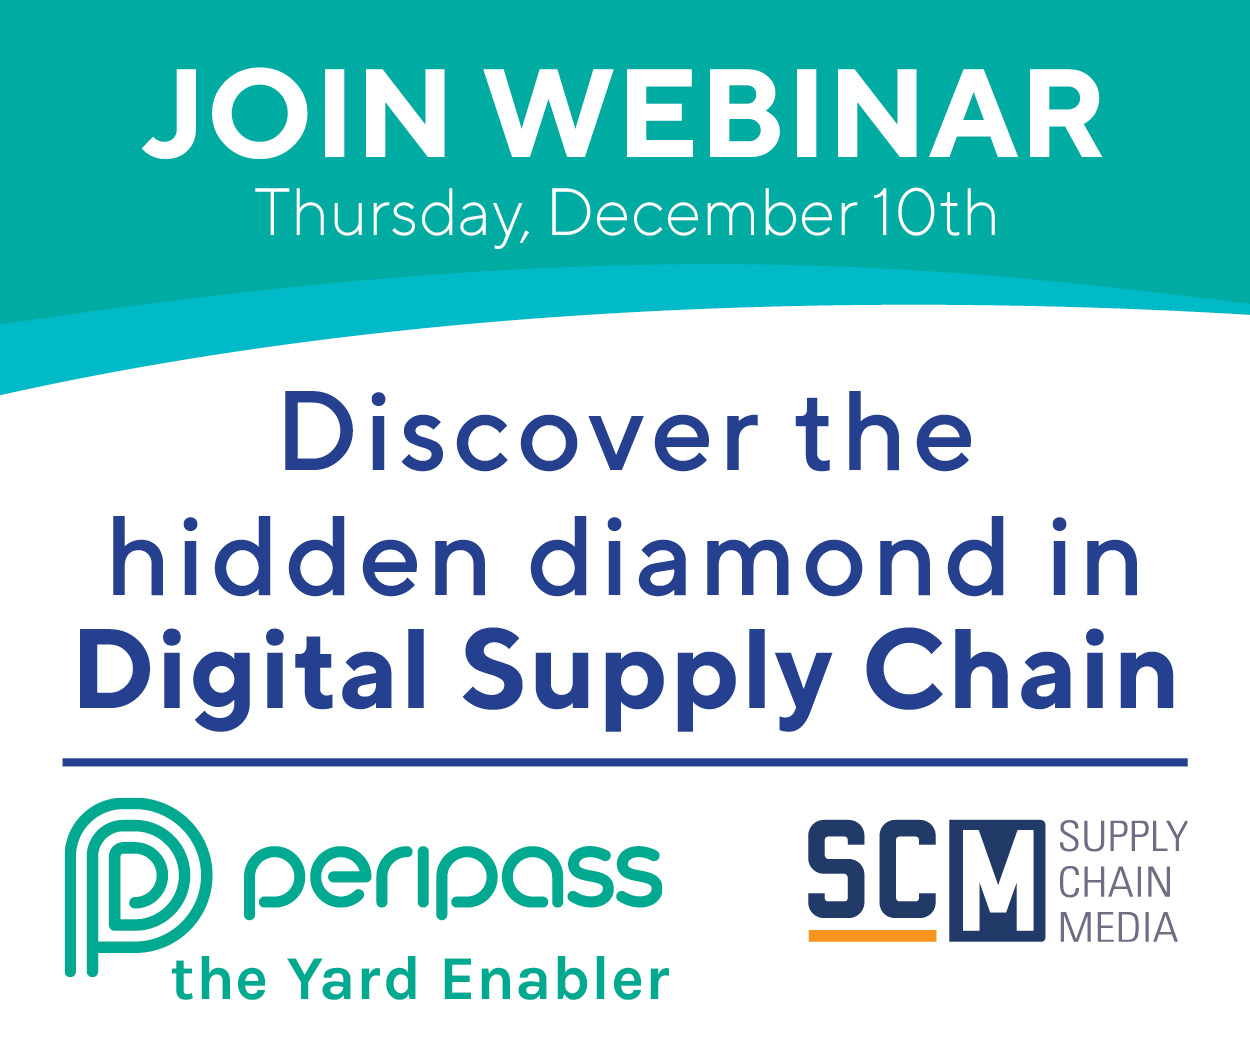 SCM Webinar with Peripass: Discover the hidden diamond in Digital Supply Chain